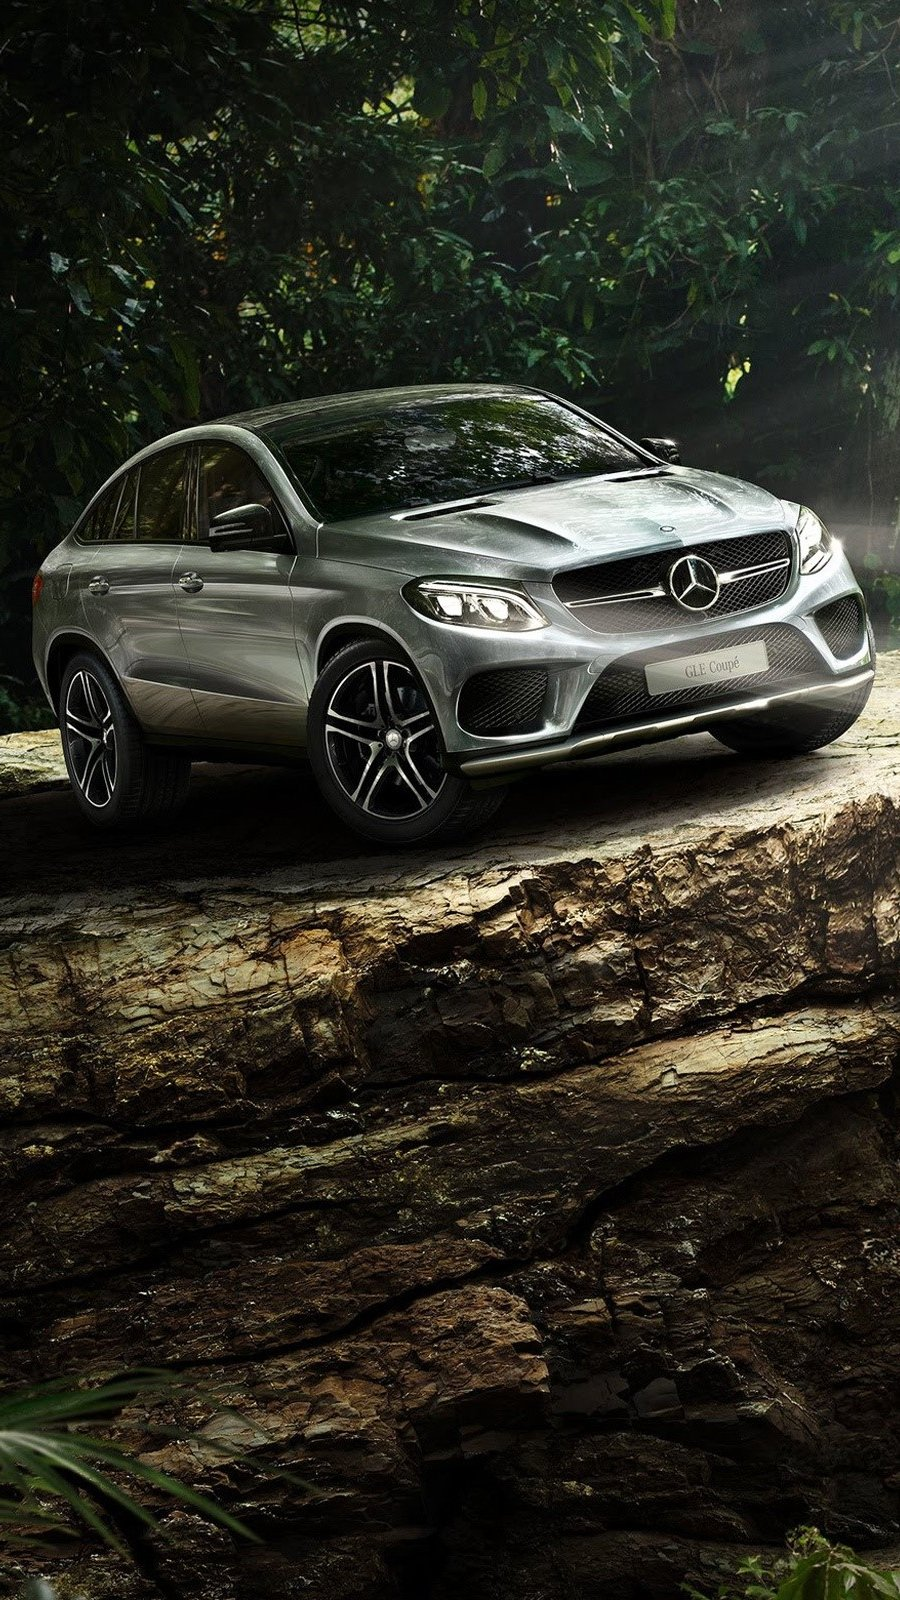 Fondos de pantalla Mercedes Benz GLE Coupe en Jurassic World Vertical